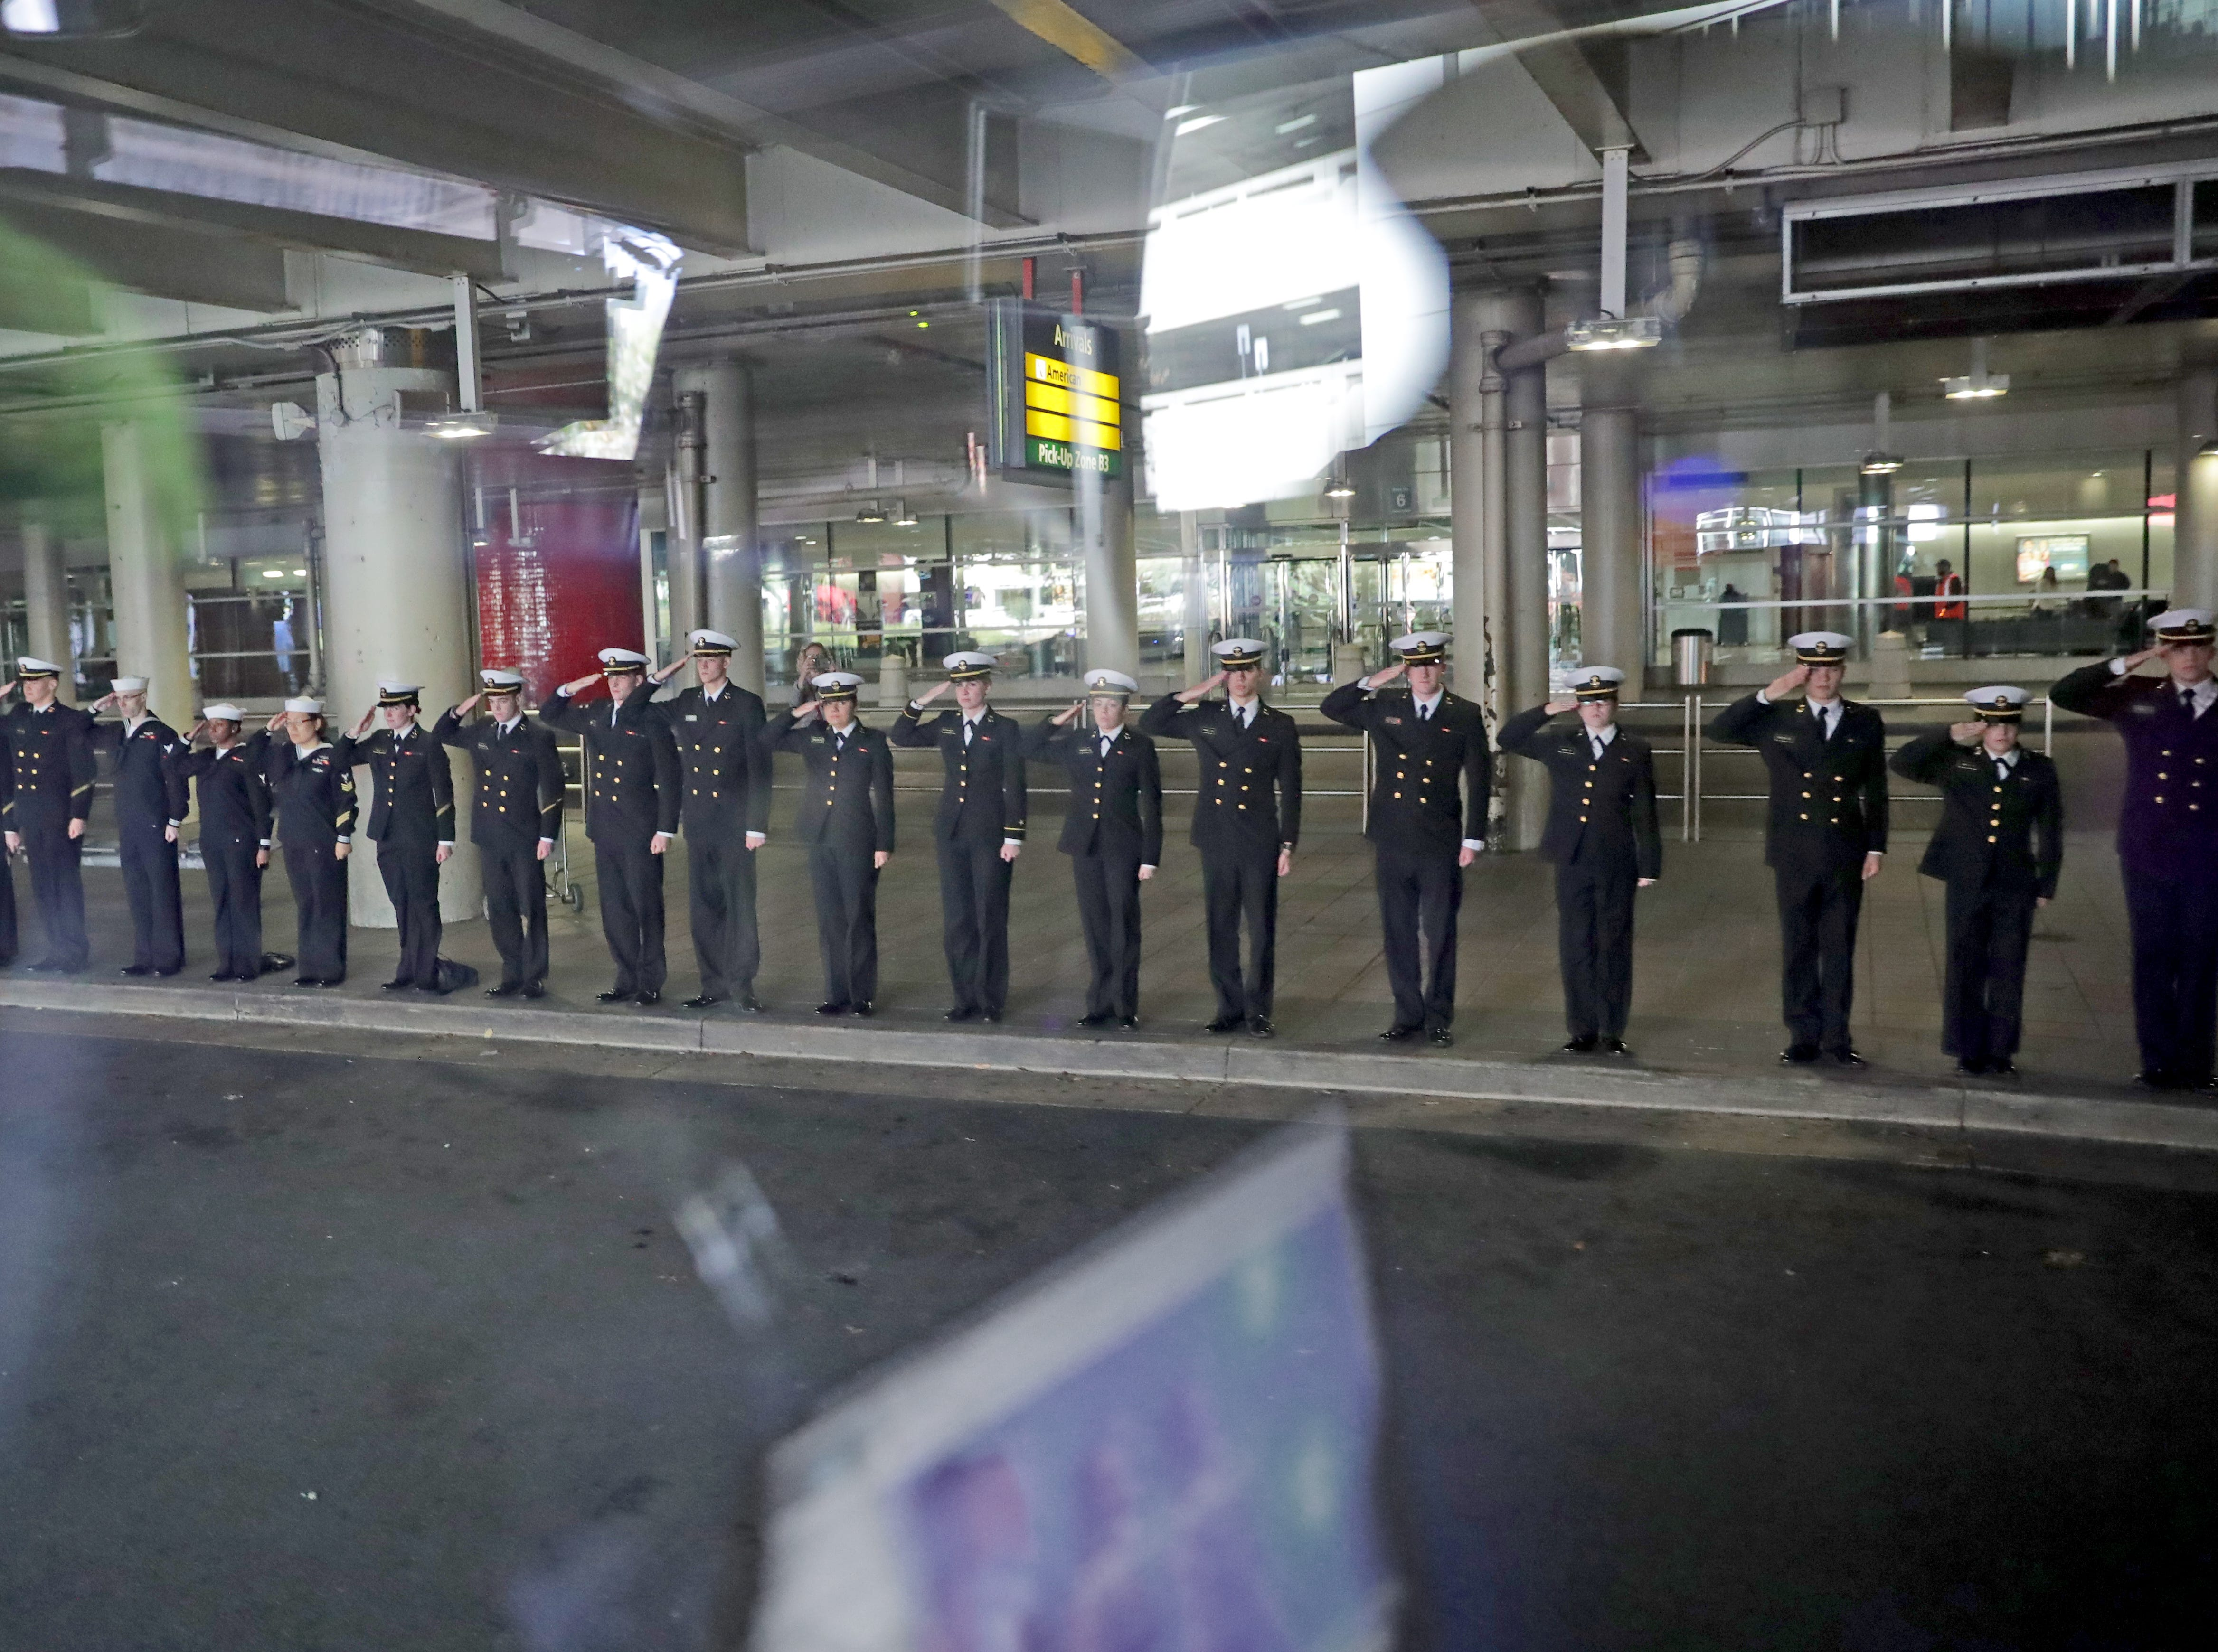 Midshipmen from the  Naval Academy  salute a bus full of Honor Flight veterans as it passes while leaving the Baltimore airport.